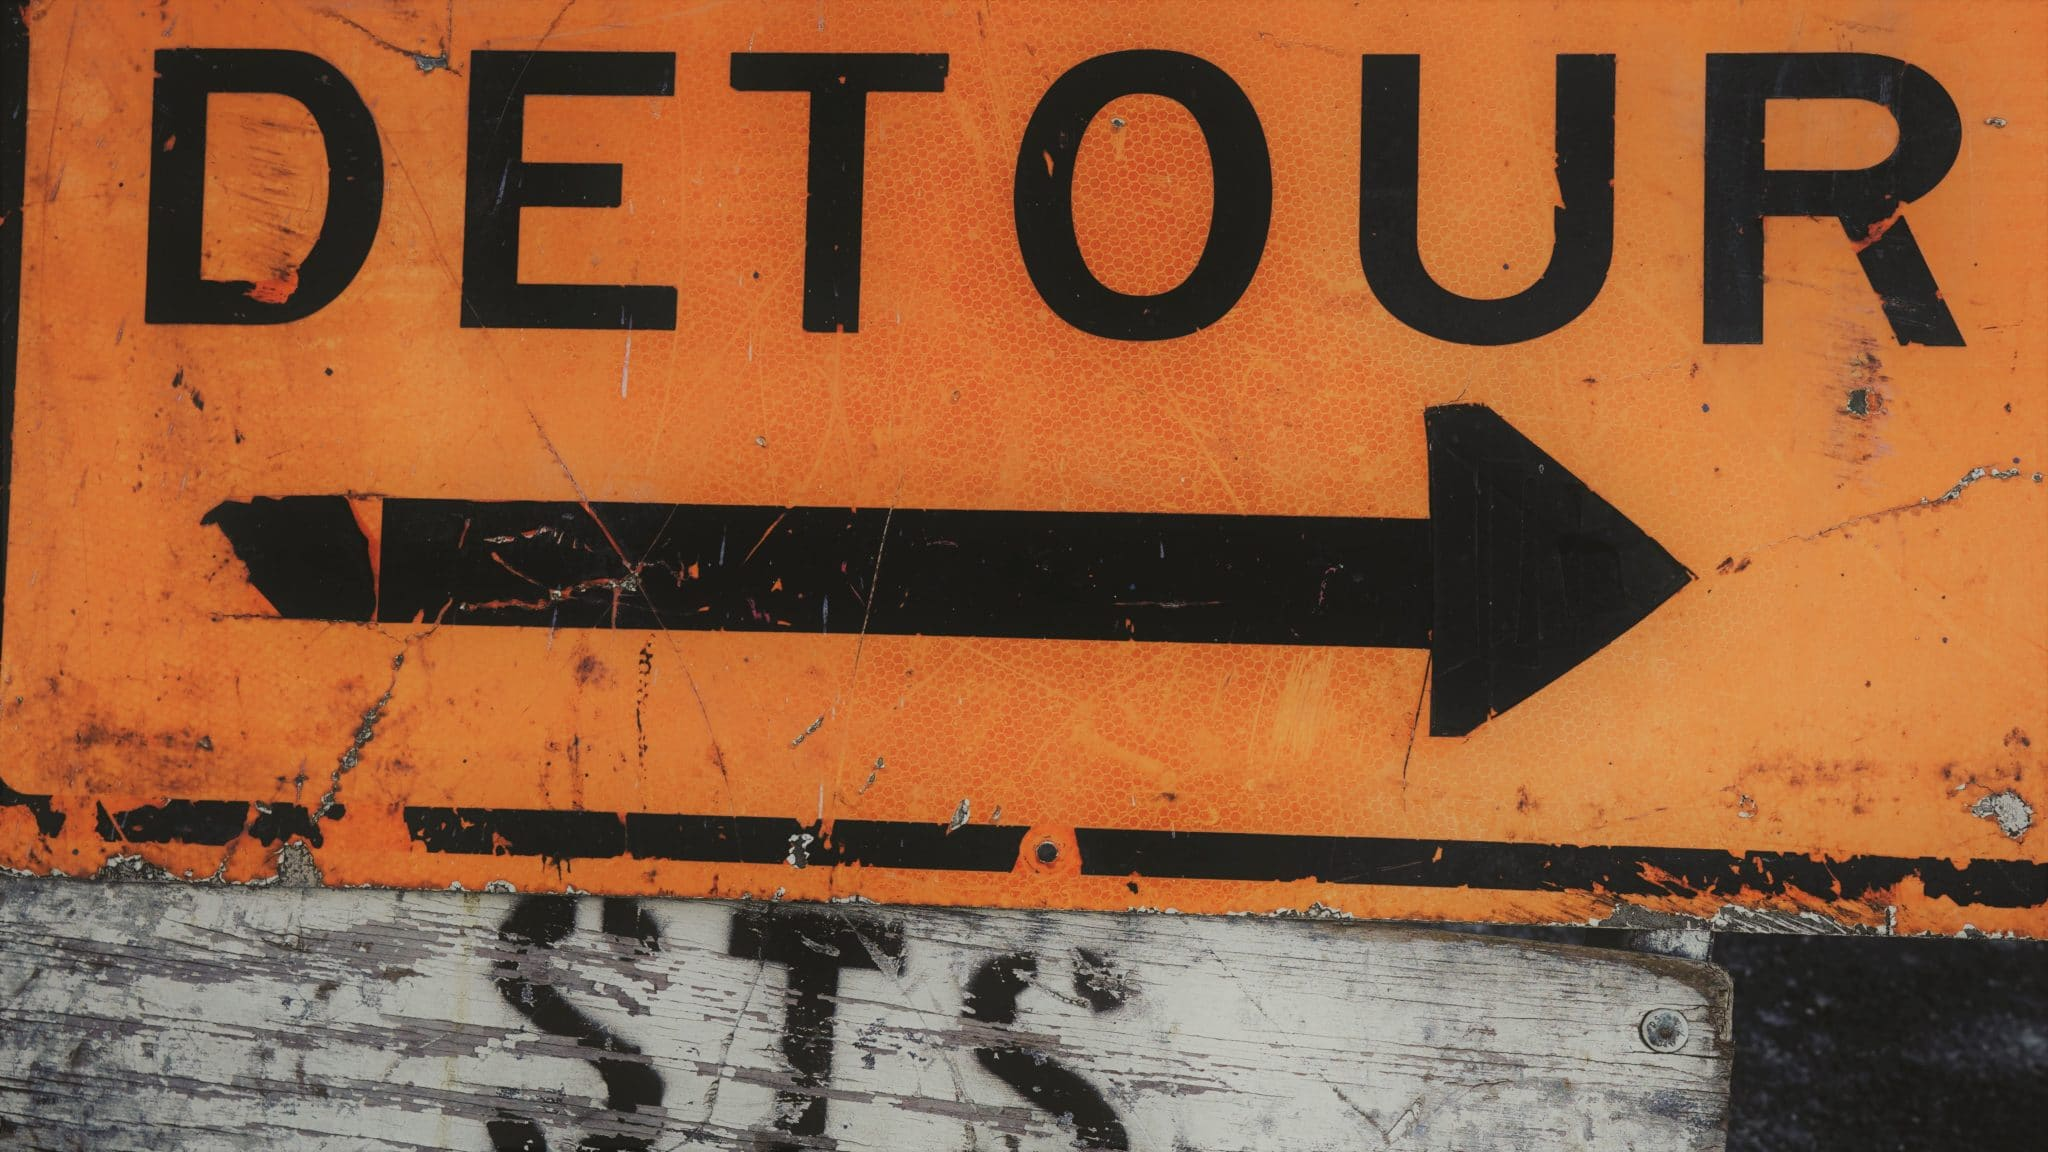 detour sign - when to walk away from an inspection